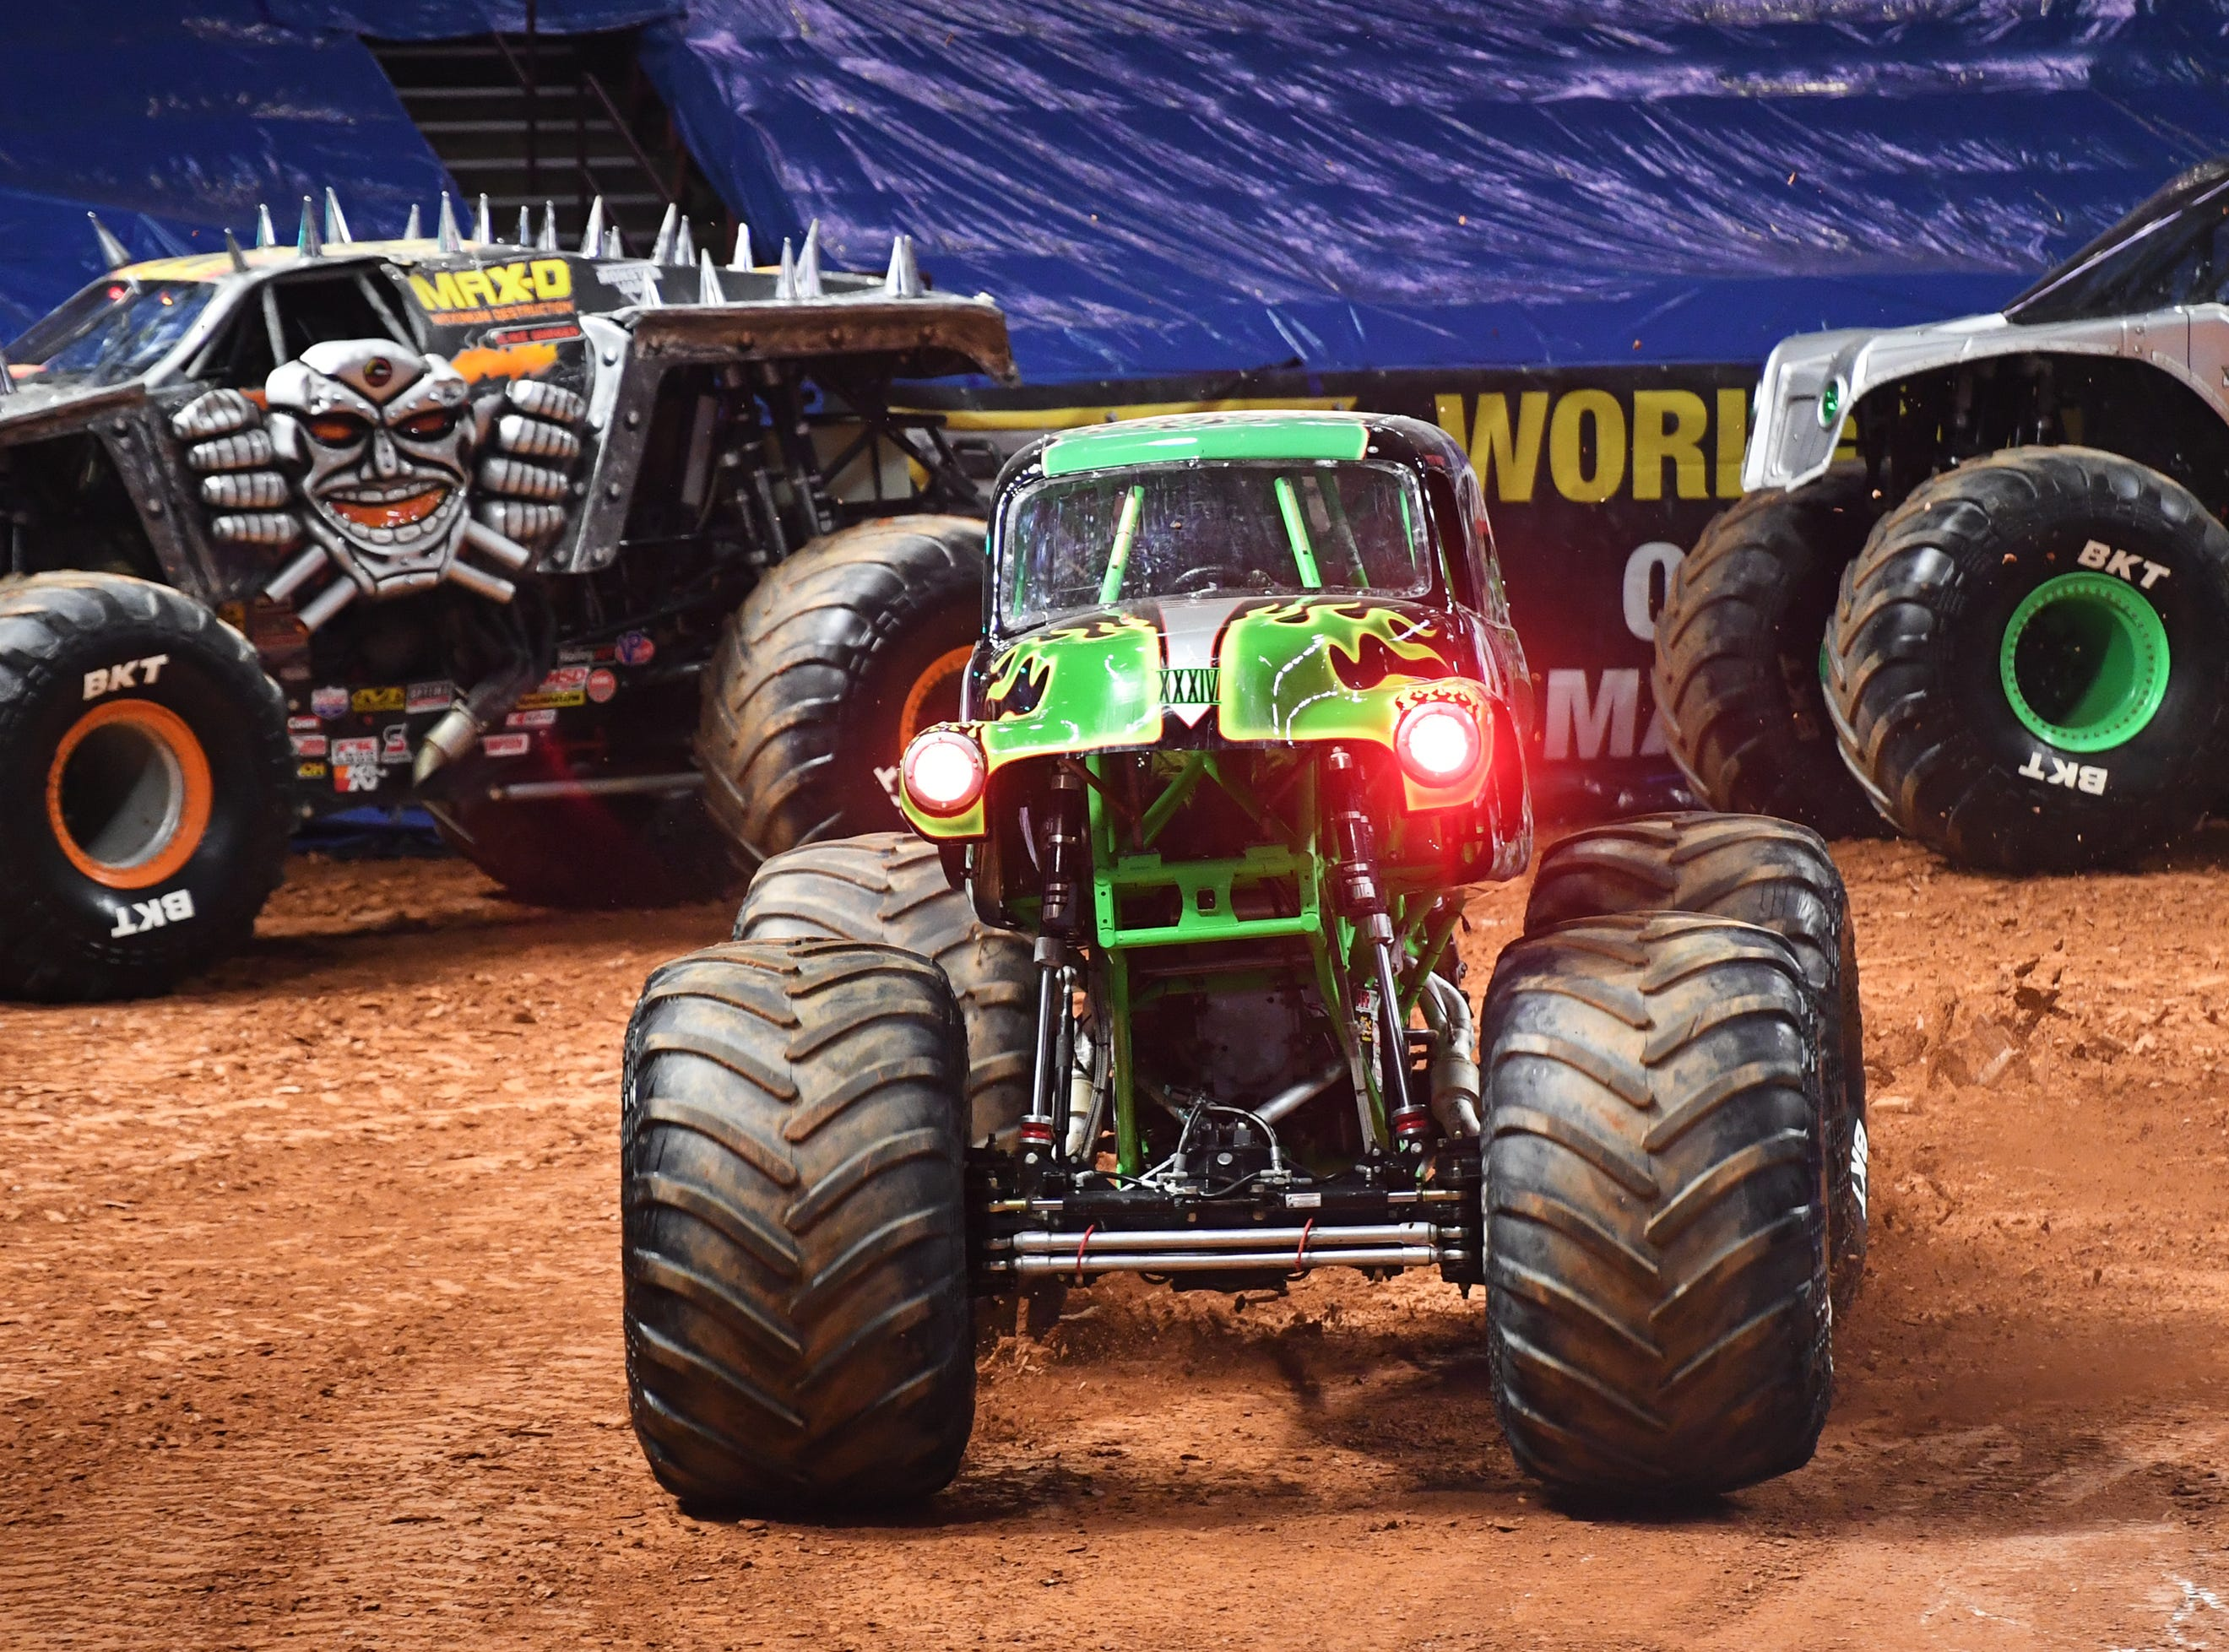 A driver competes in Grave Digger during the Monster Jam Racing competition at Bon Secours Wellness Arena Friday, Feb. 8, 2019.